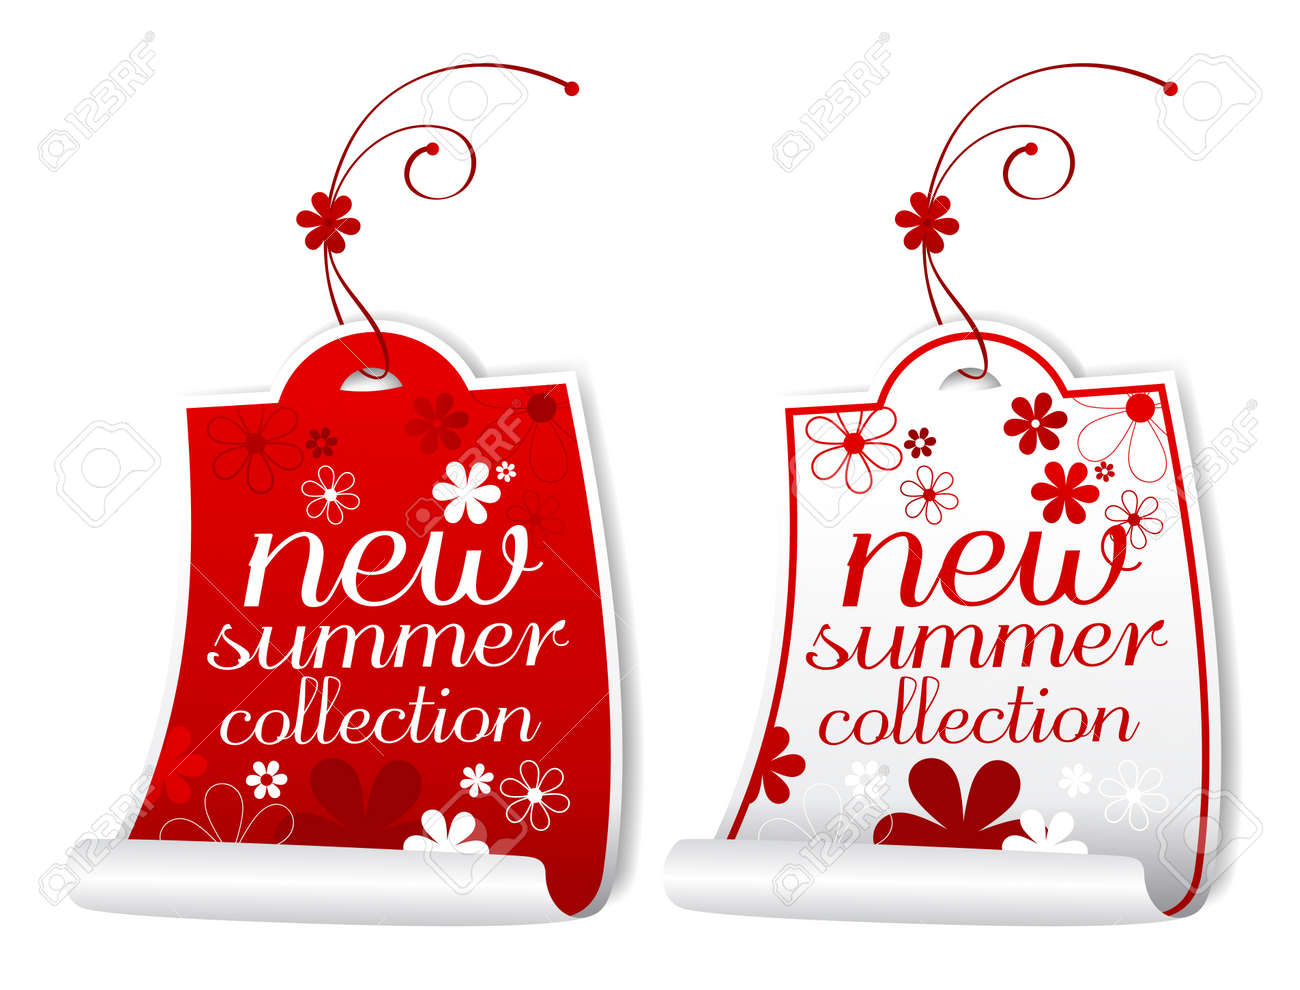 New summer collection labels. Stock Vector - 9334443